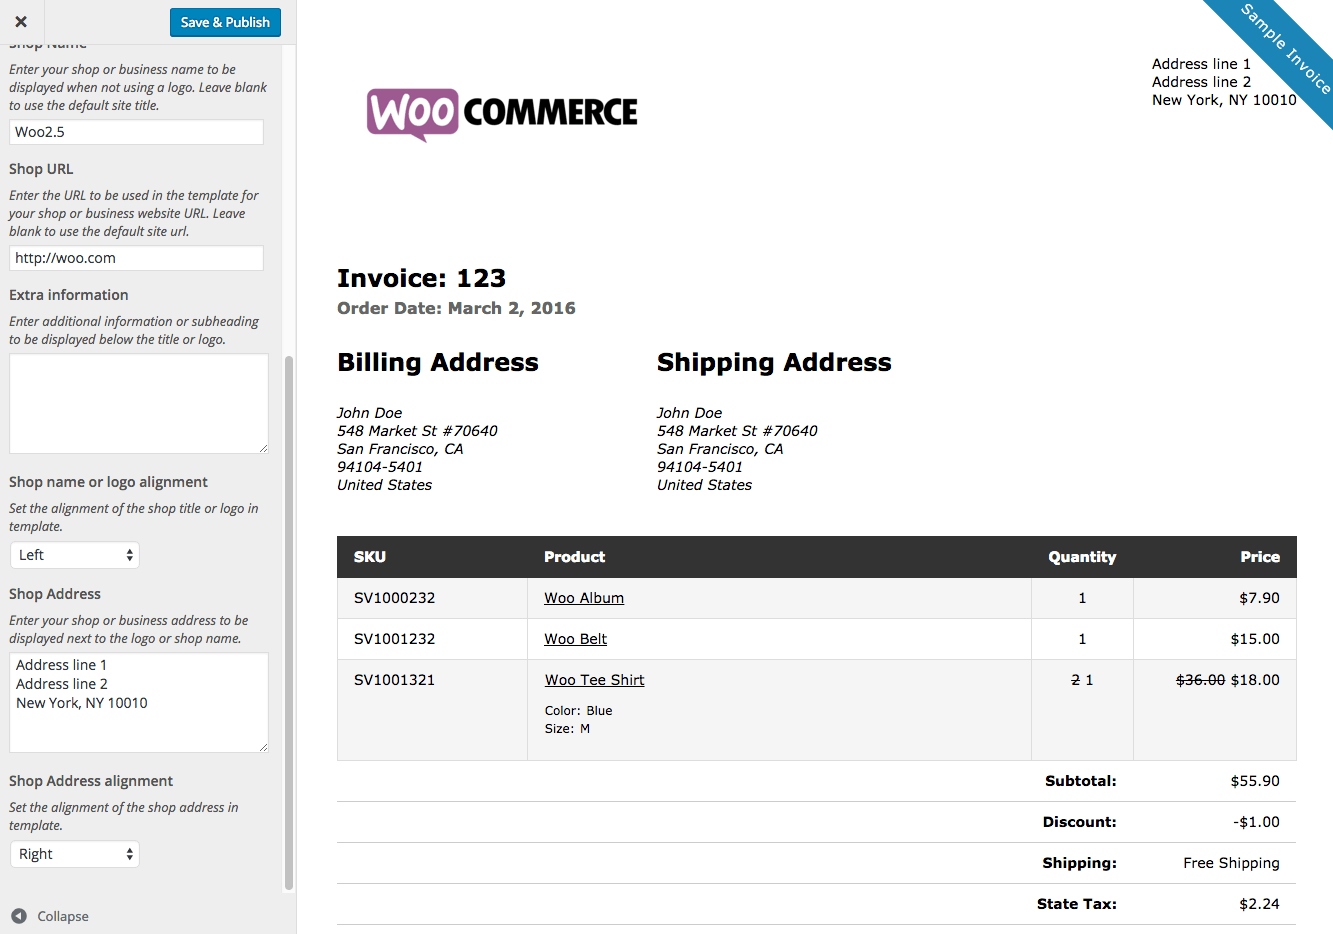 Aninsaneportraitus  Personable Print Invoices Amp Packing Lists  Woocommerce With Handsome Woocommerce Print Invoices  Packing Lists Customizer With Appealing Child Support Receipt Form Also Keeping Track Of Receipts In Addition Donation Receipt Letter Sample And Small Receipt Printer As Well As Company Receipts Additionally Neat Receipt Review From Woocommercecom With Aninsaneportraitus  Handsome Print Invoices Amp Packing Lists  Woocommerce With Appealing Woocommerce Print Invoices  Packing Lists Customizer And Personable Child Support Receipt Form Also Keeping Track Of Receipts In Addition Donation Receipt Letter Sample From Woocommercecom